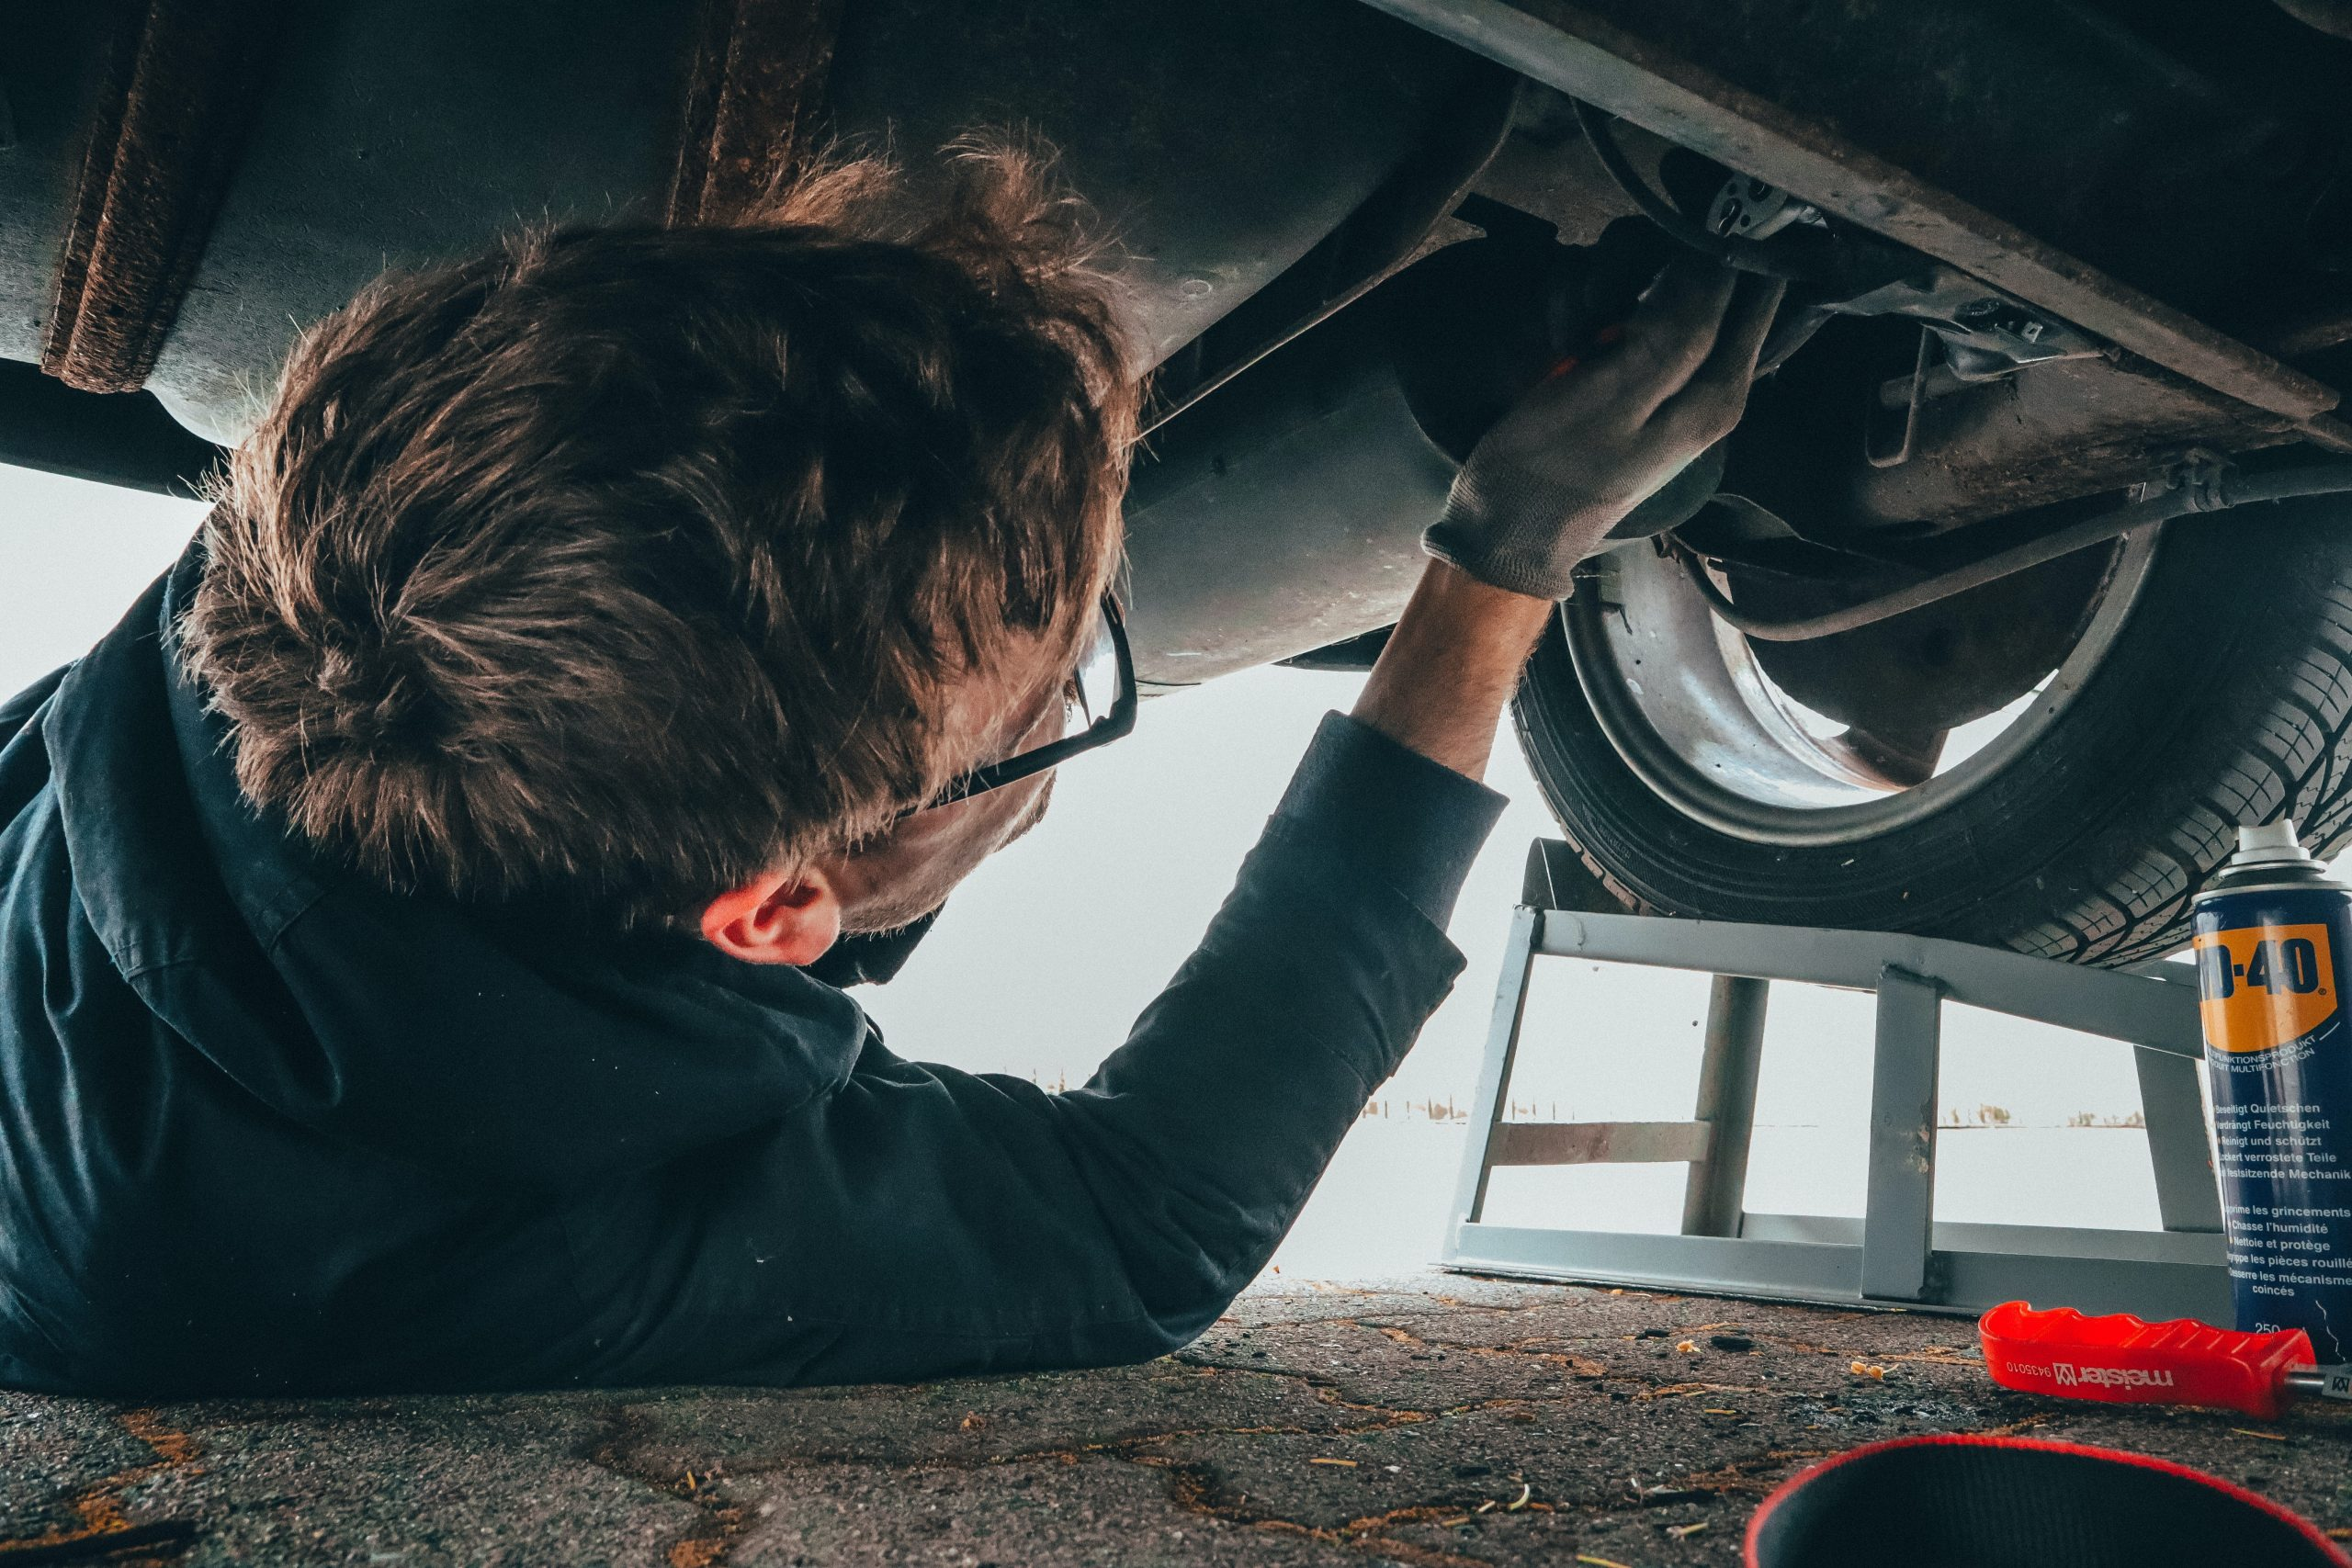 Collision repair is our speciality at Tedious Repairs!